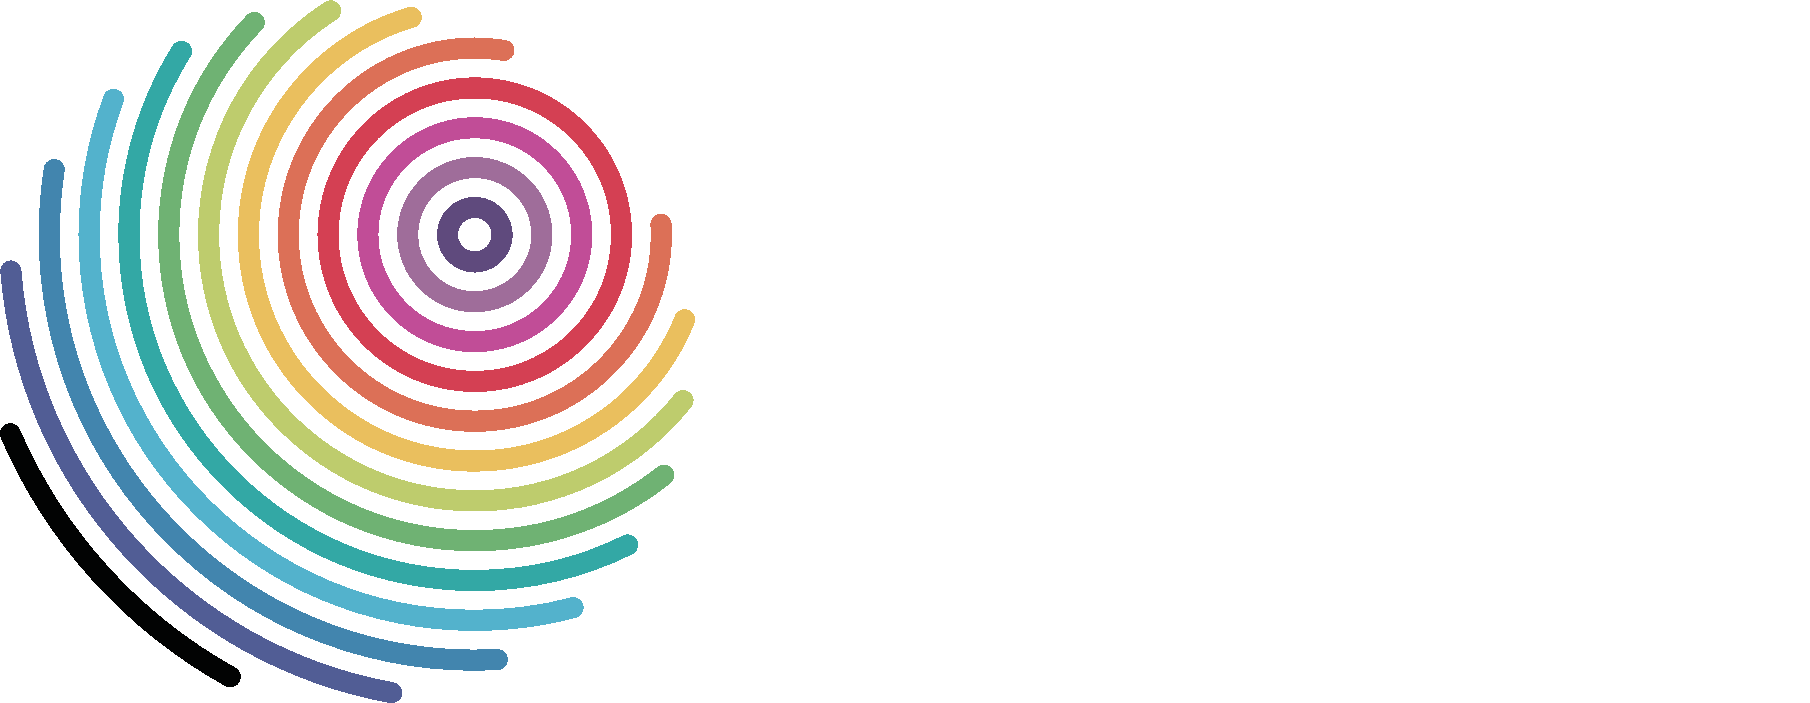 Humanities Digital Library Logo